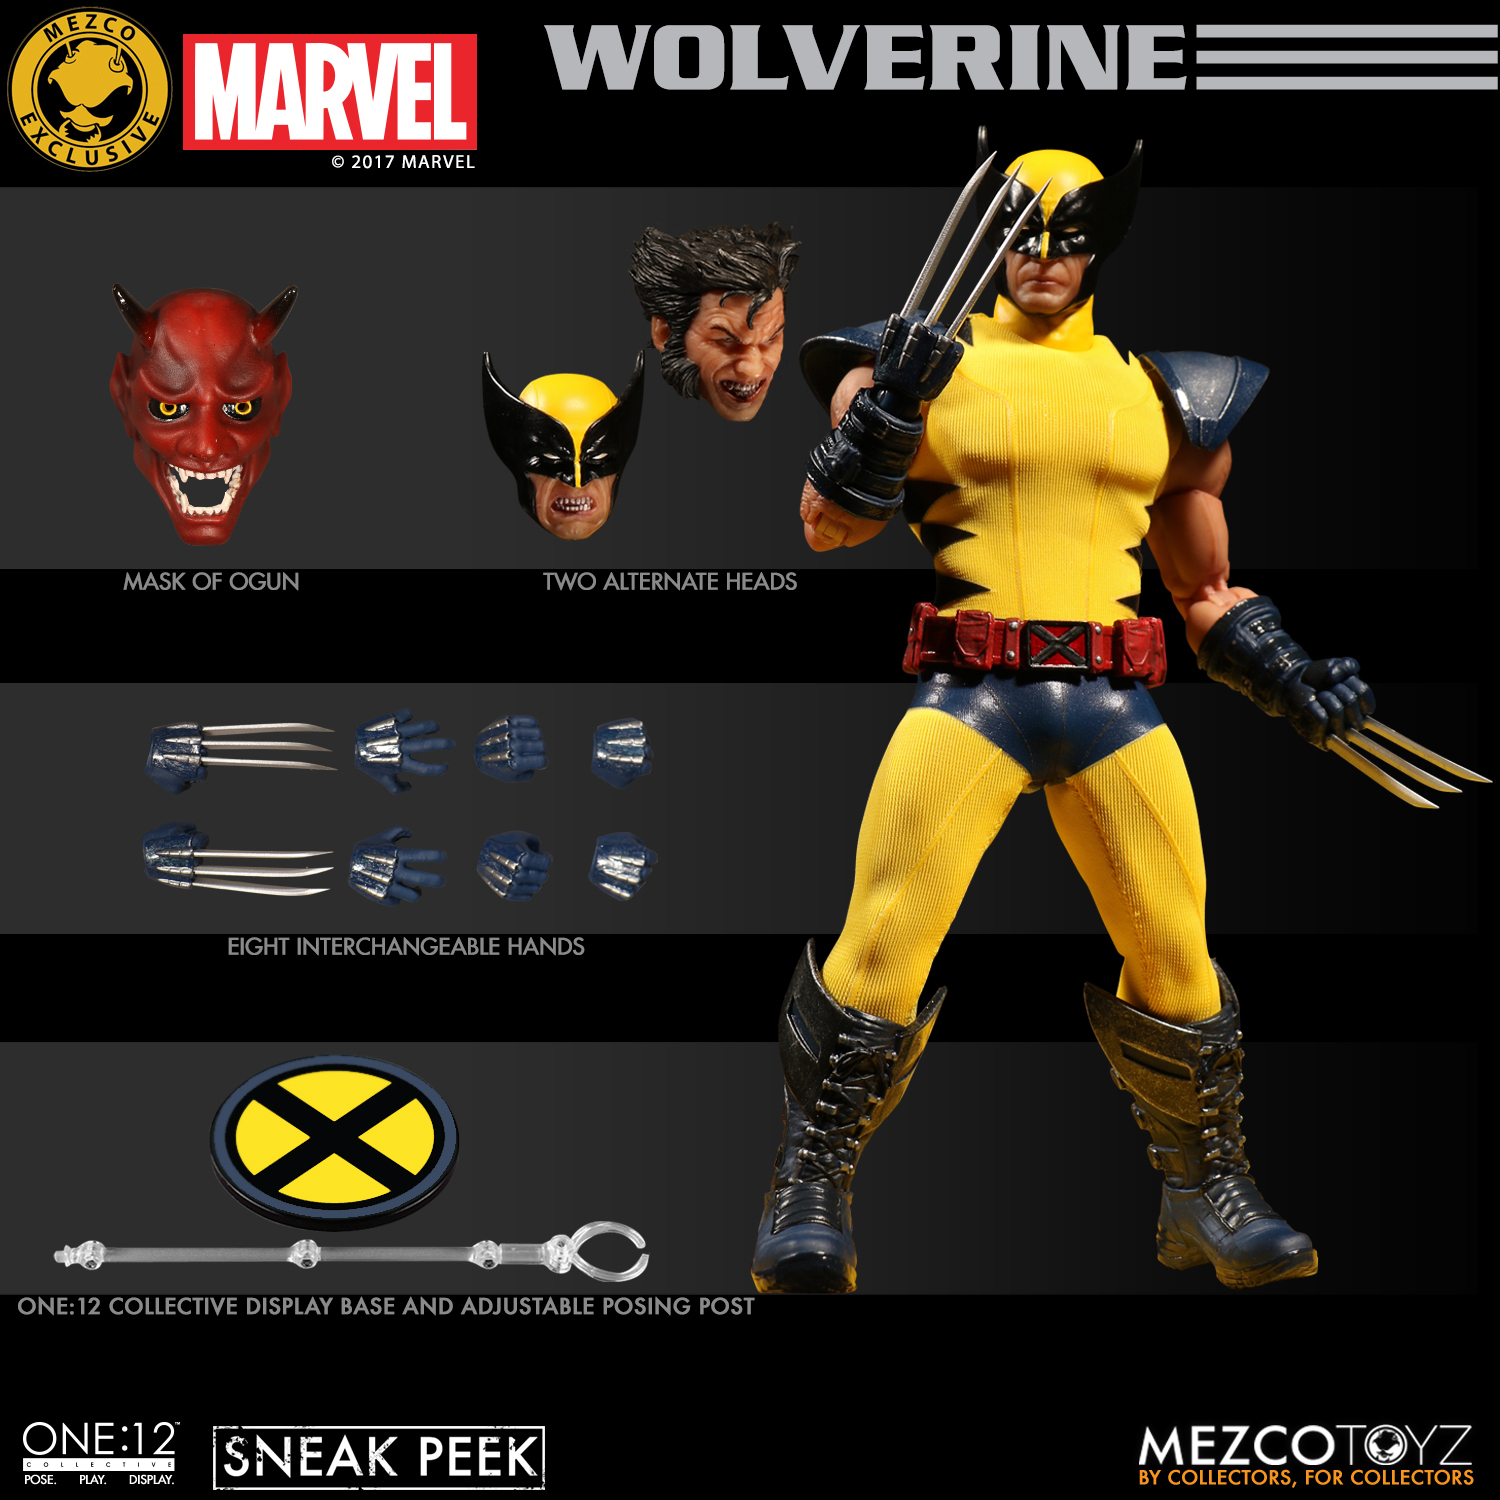 Mezco Toyz Reveals Fall 2017 Exclusive: Yellow/Blue Wolverine